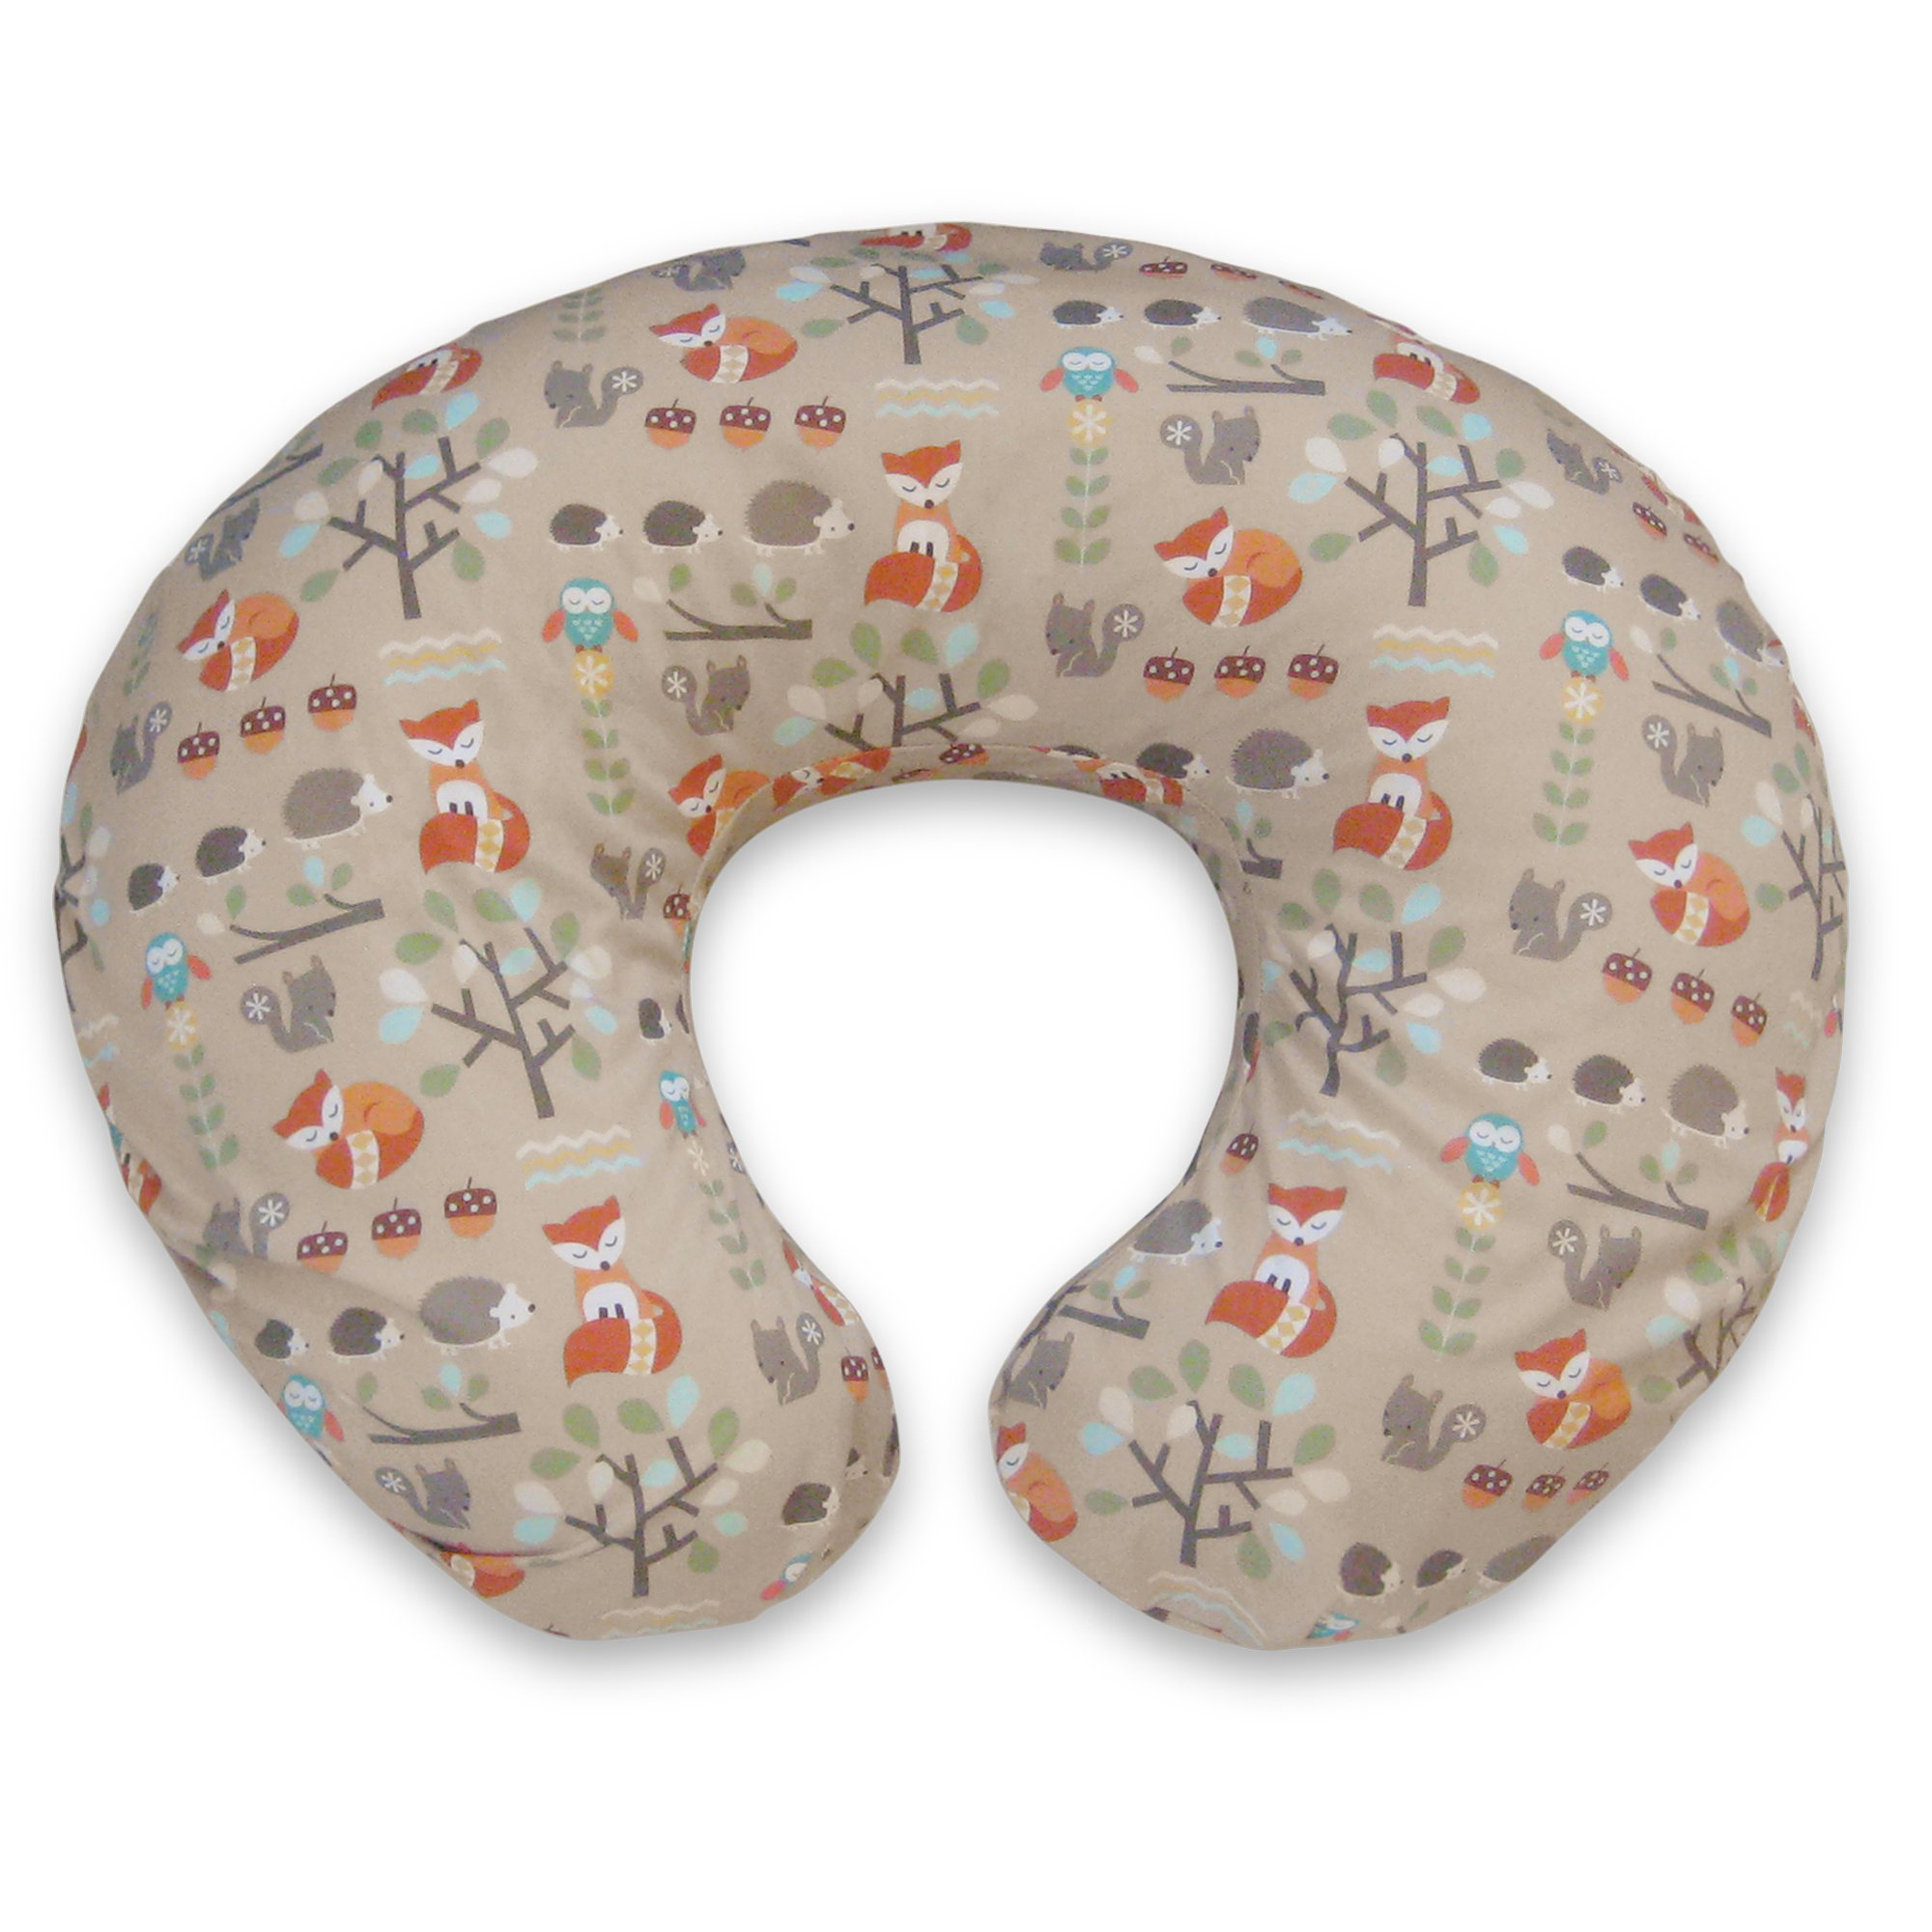 Boppy Water Resistant Protective Cover Breast Feeding Mom N Bab Sweater Orange Fox Pillow Slipcover Classic Forest Tan